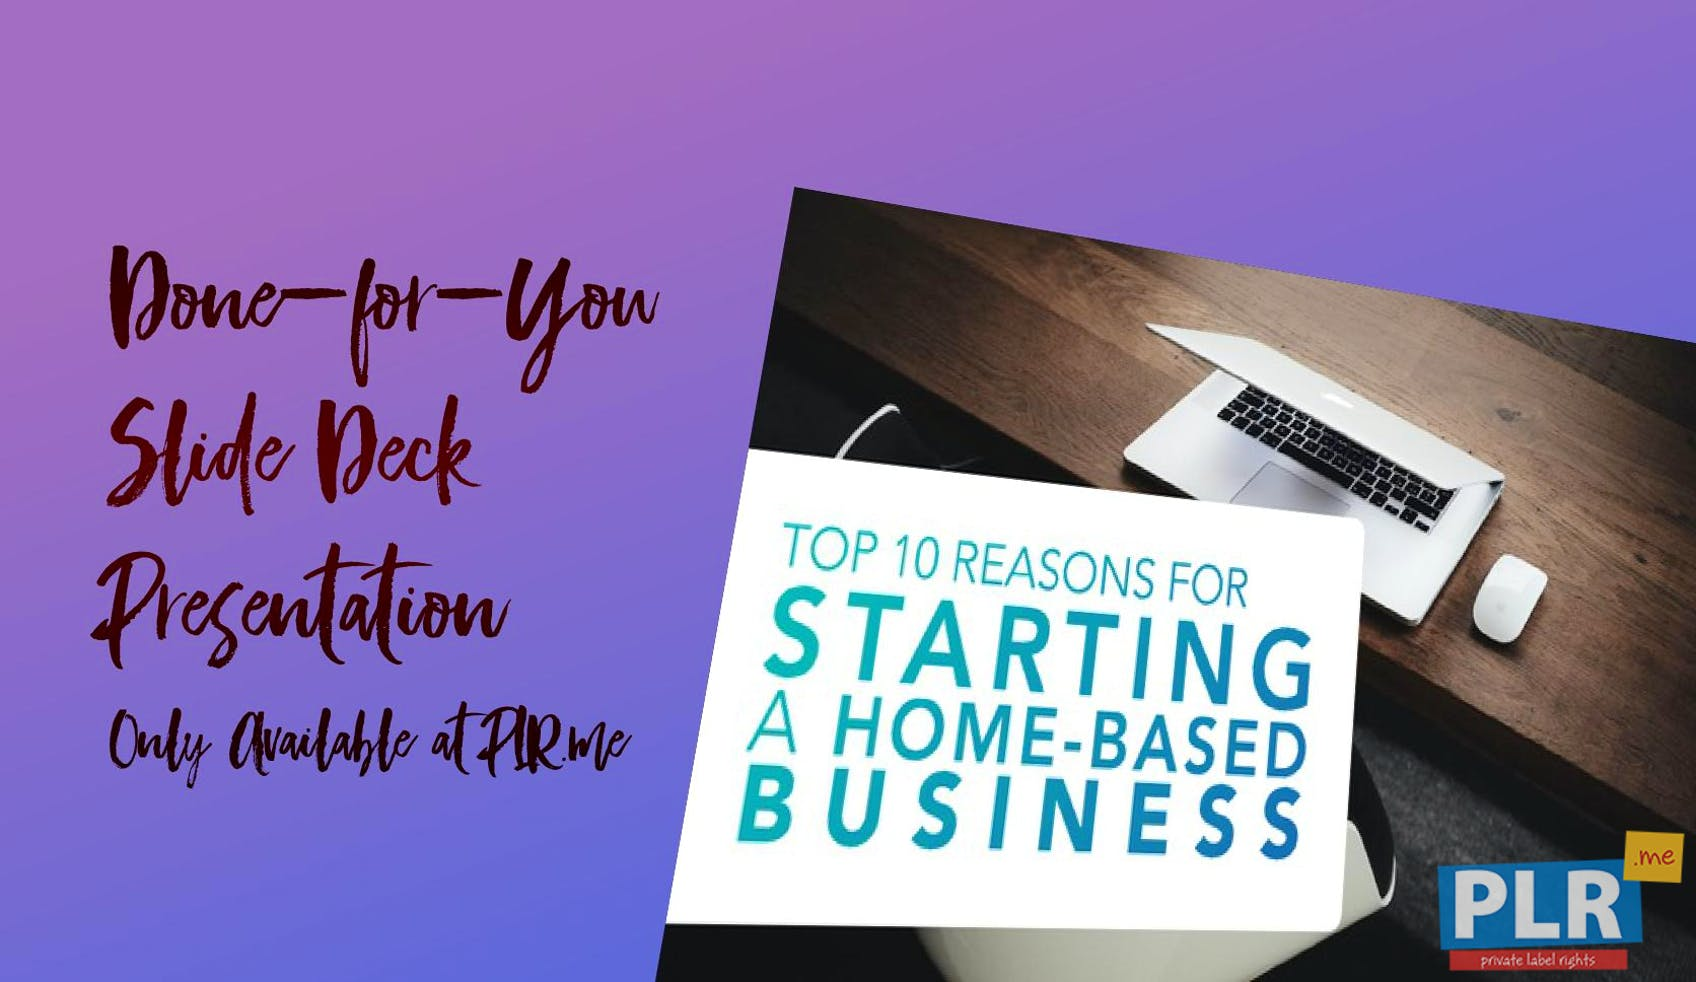 Top 10 Reasons For Starting A Home Based Business - Slide Deck